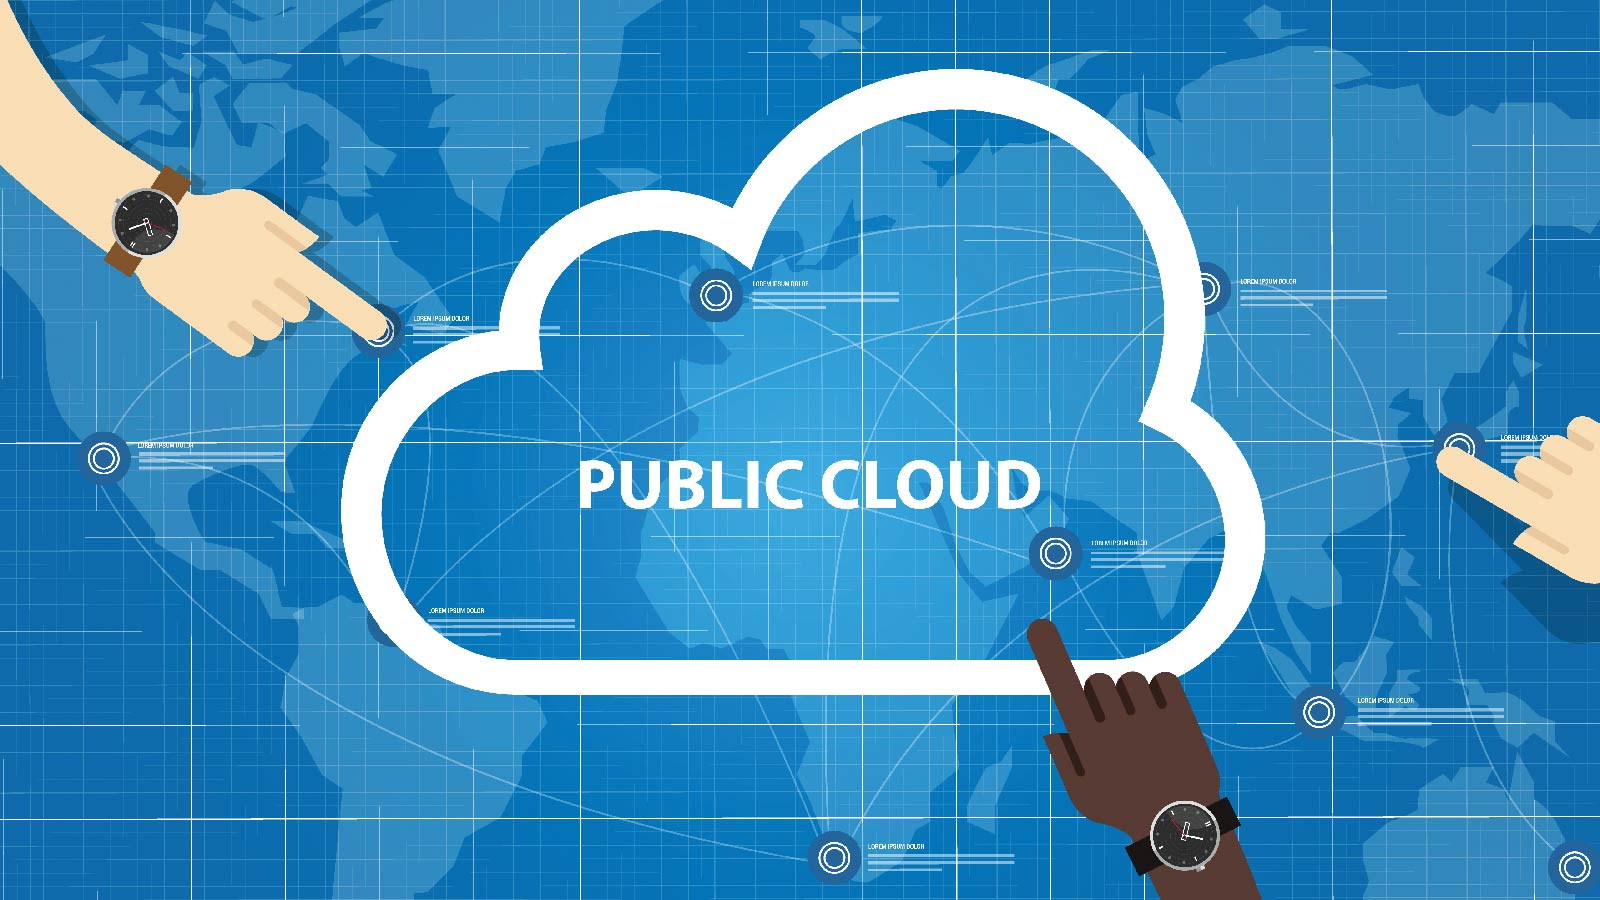 The Worldwide Public Cloud Services Market Is Booming